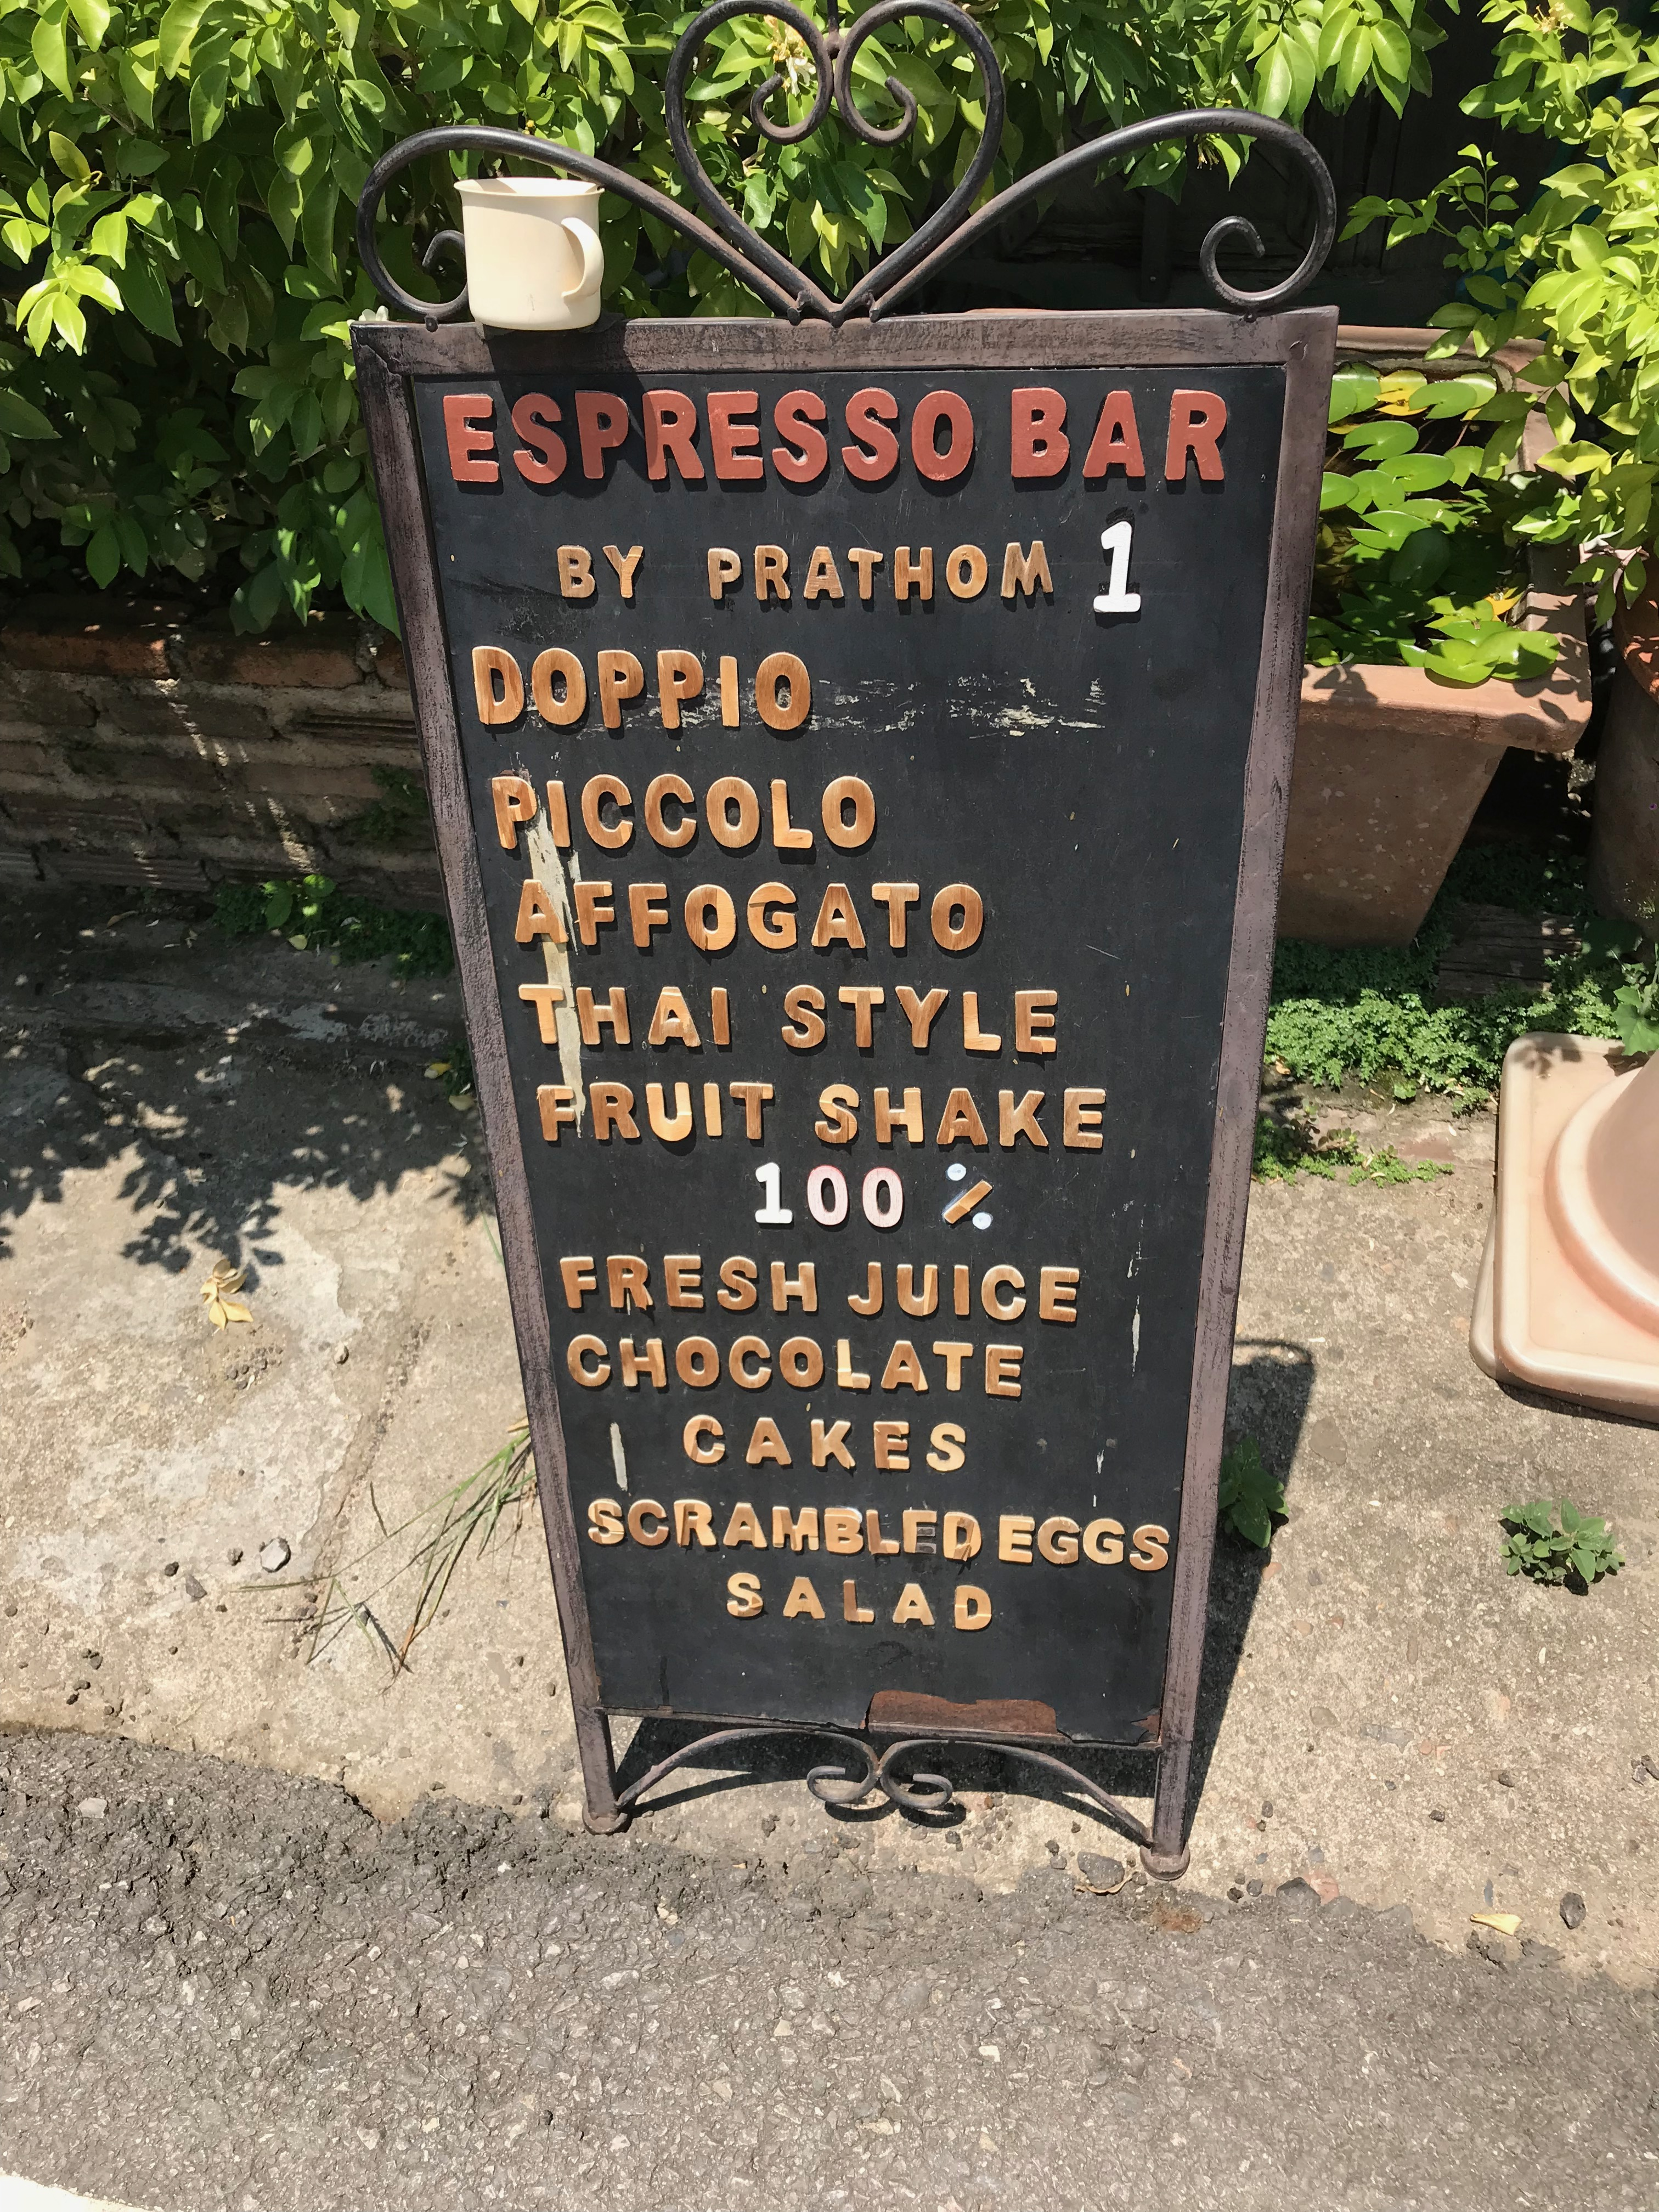 Espresso Bar by Prathom 1